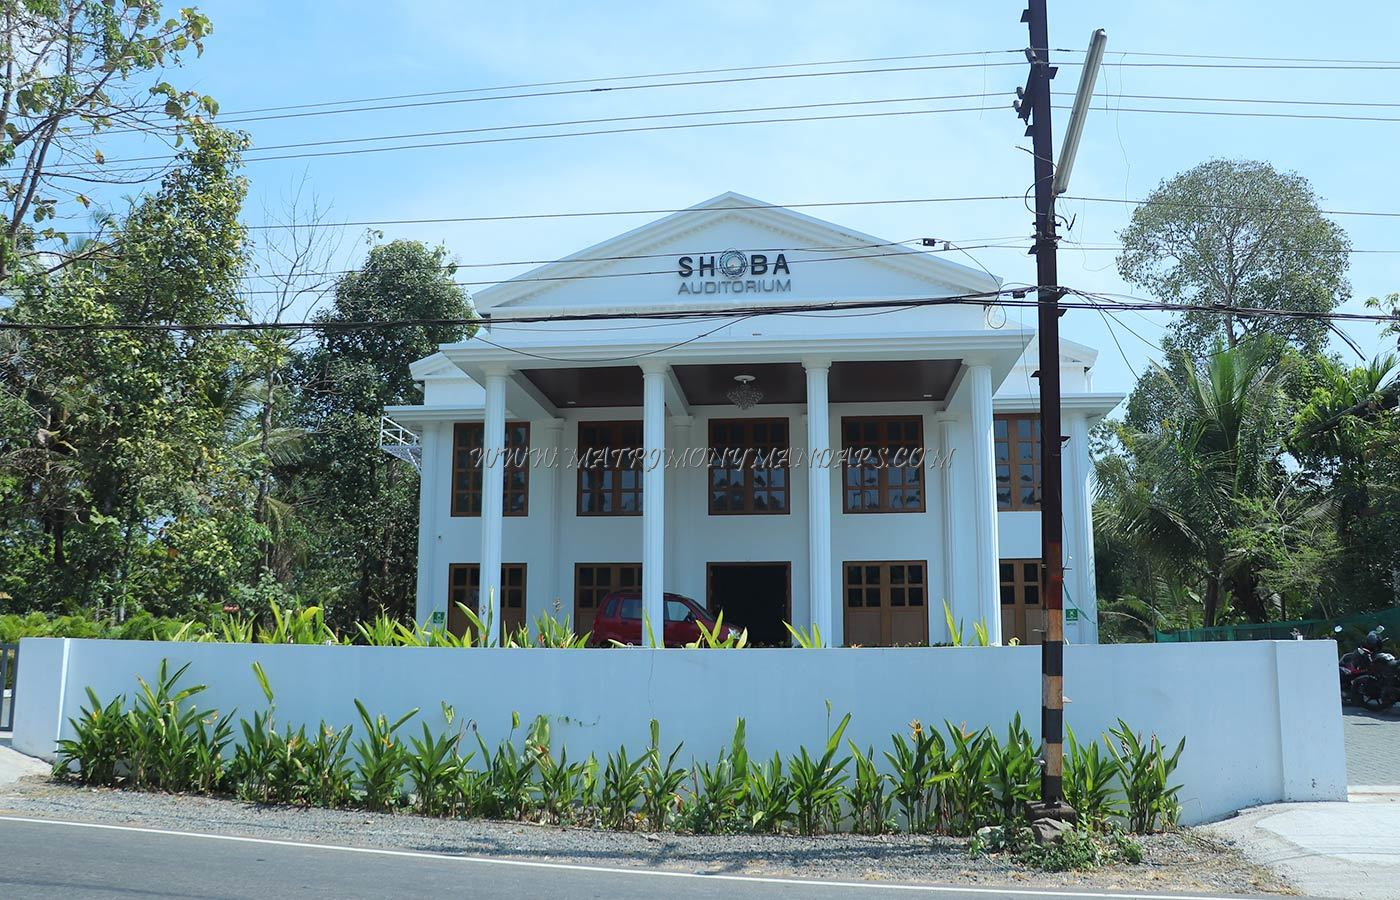 Find the availability of the Shoba Auditorium (A/C) in Tripunithura, Kochi and avail special offers